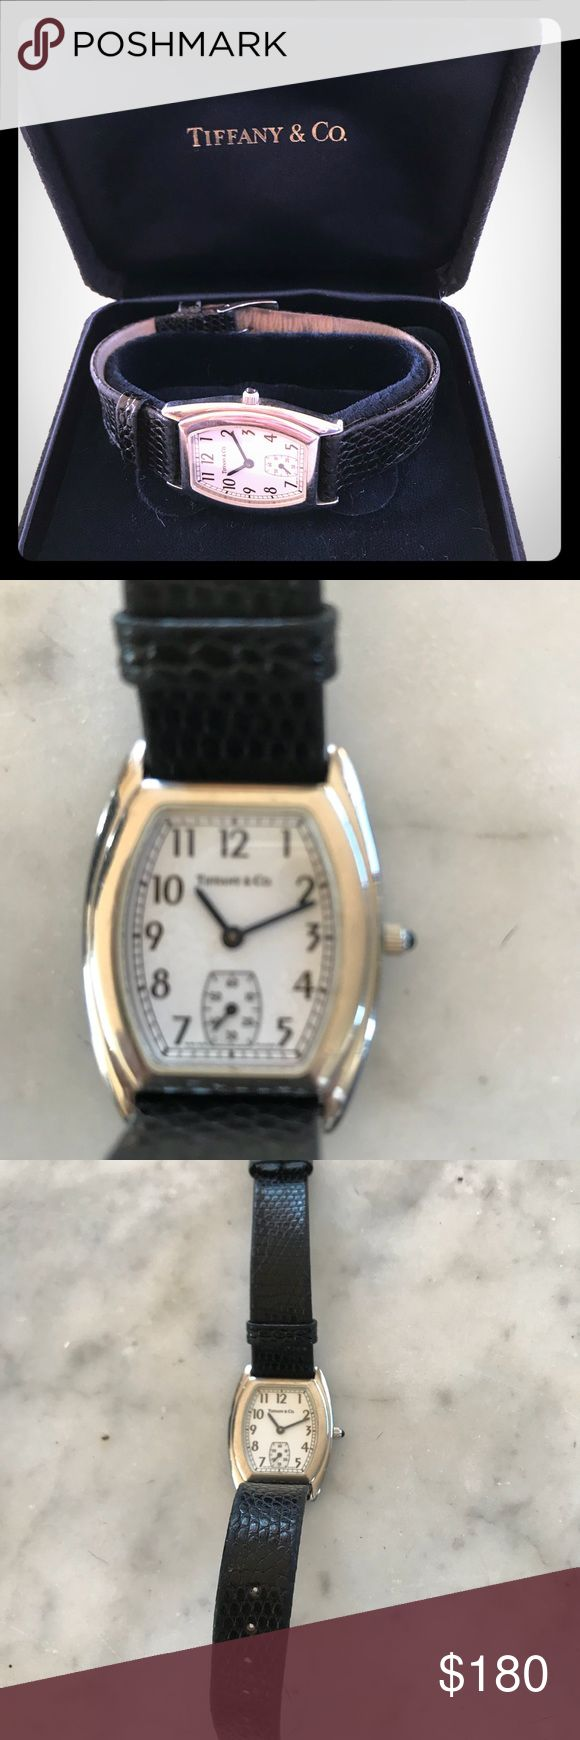 Tiffany watch Vintage Tiffany Atlas watch.   Circa 2000, worn and needs repair, but if you love vintage and Tiffanys it's totally worth it and a classic! Tiffany & Co. Accessories Watches